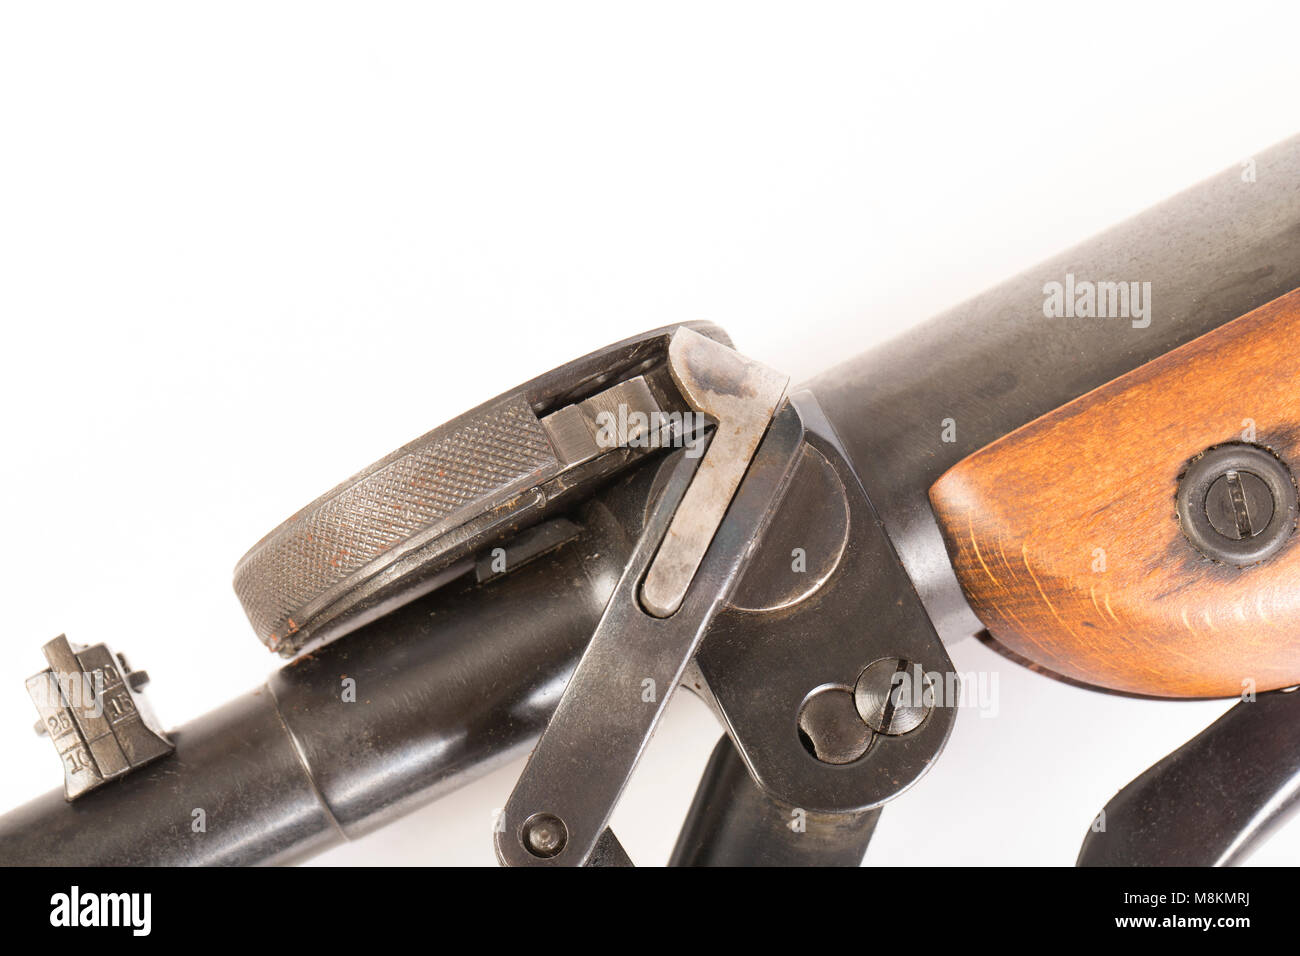 A .177 German Haenel Model 5 Junior repeater air rifle showing the lever that rotates the drum magazine. England - Stock Image